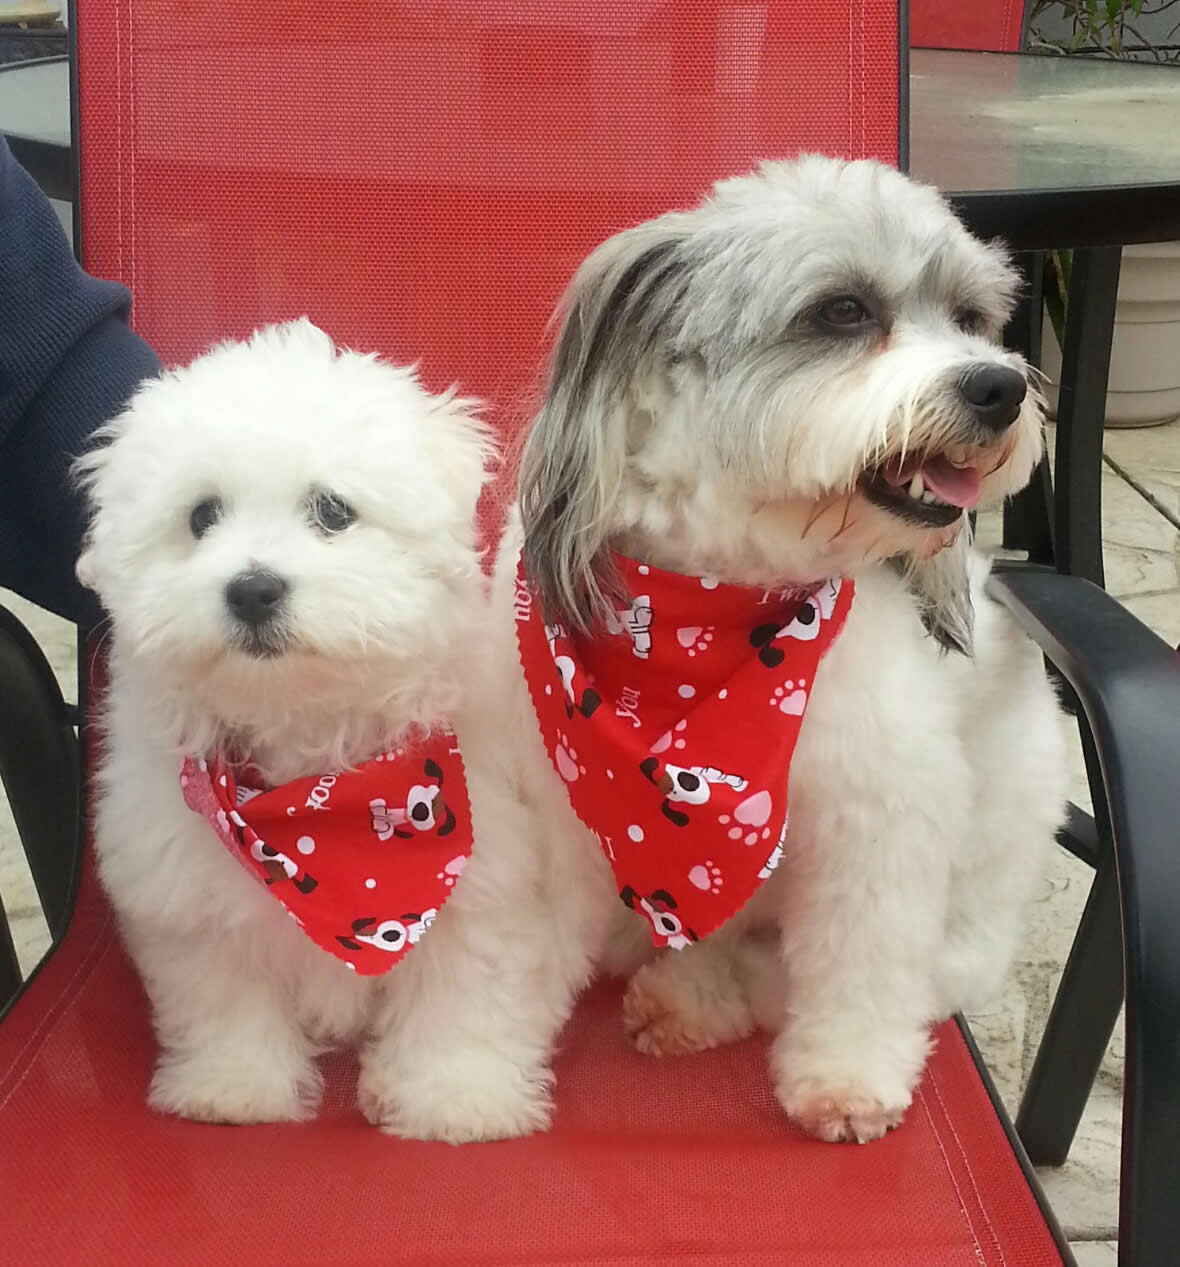 "<div class=""meta image-caption""><div class=""origin-logo origin-image none""><span>none</span></div><span class=""caption-text"">Meet sisters Cami & Harper!  ABC7 News viewers and staff are sending in photos of their dogs in honor of National Puppy day on March 23, 2015. (Photo submitted by snoozie6969/KGO-TV uReport)</span></div>"